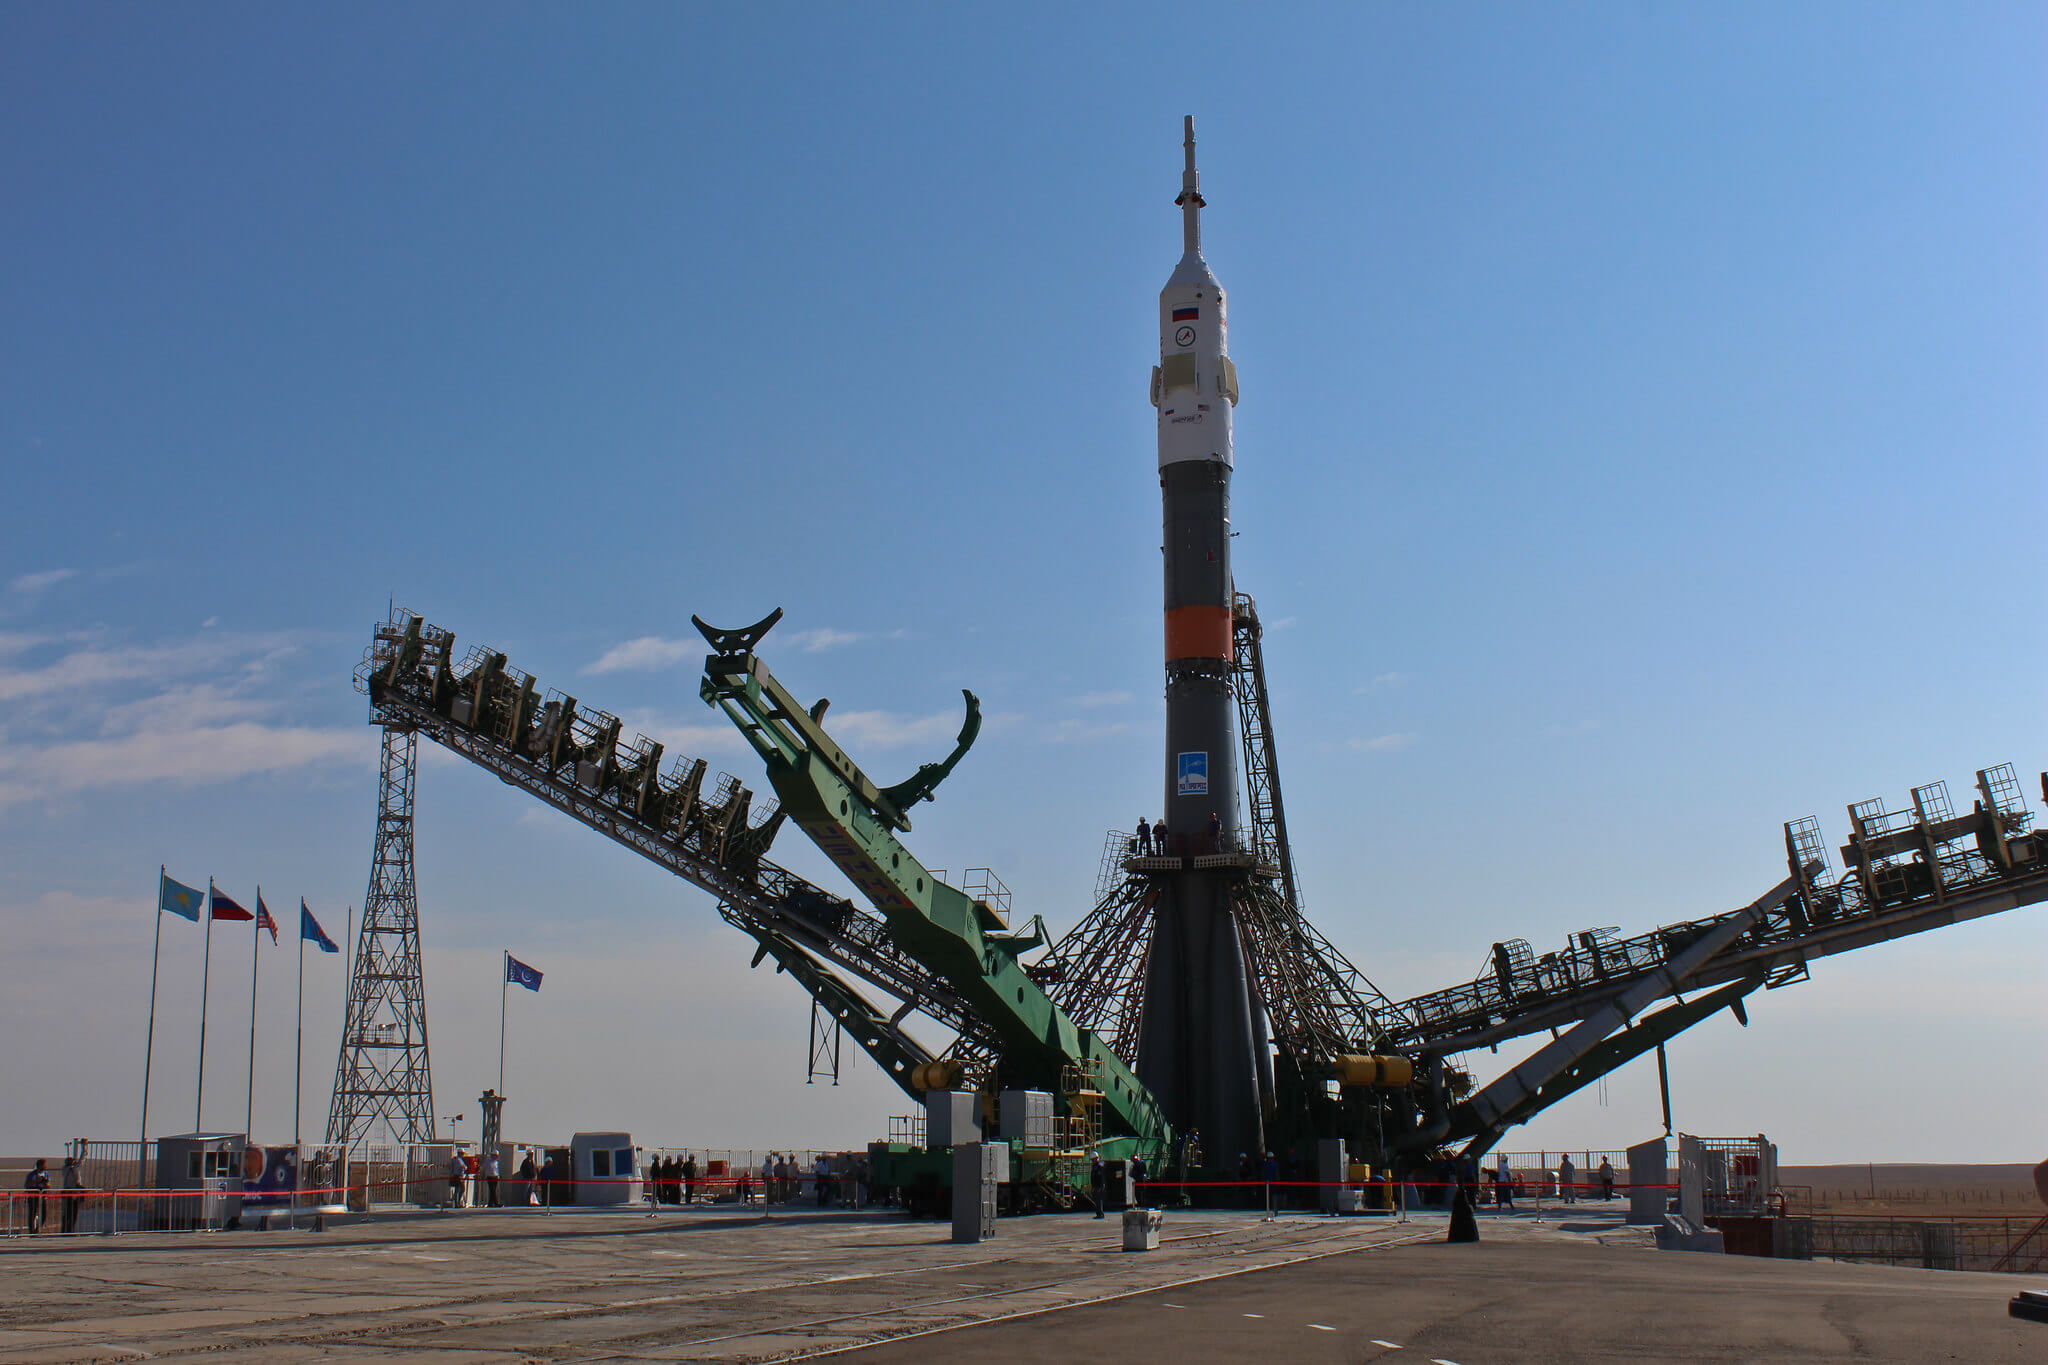 Info Shymkent - A Soyuz is preparing for launch in Cosmodrome Baikonur